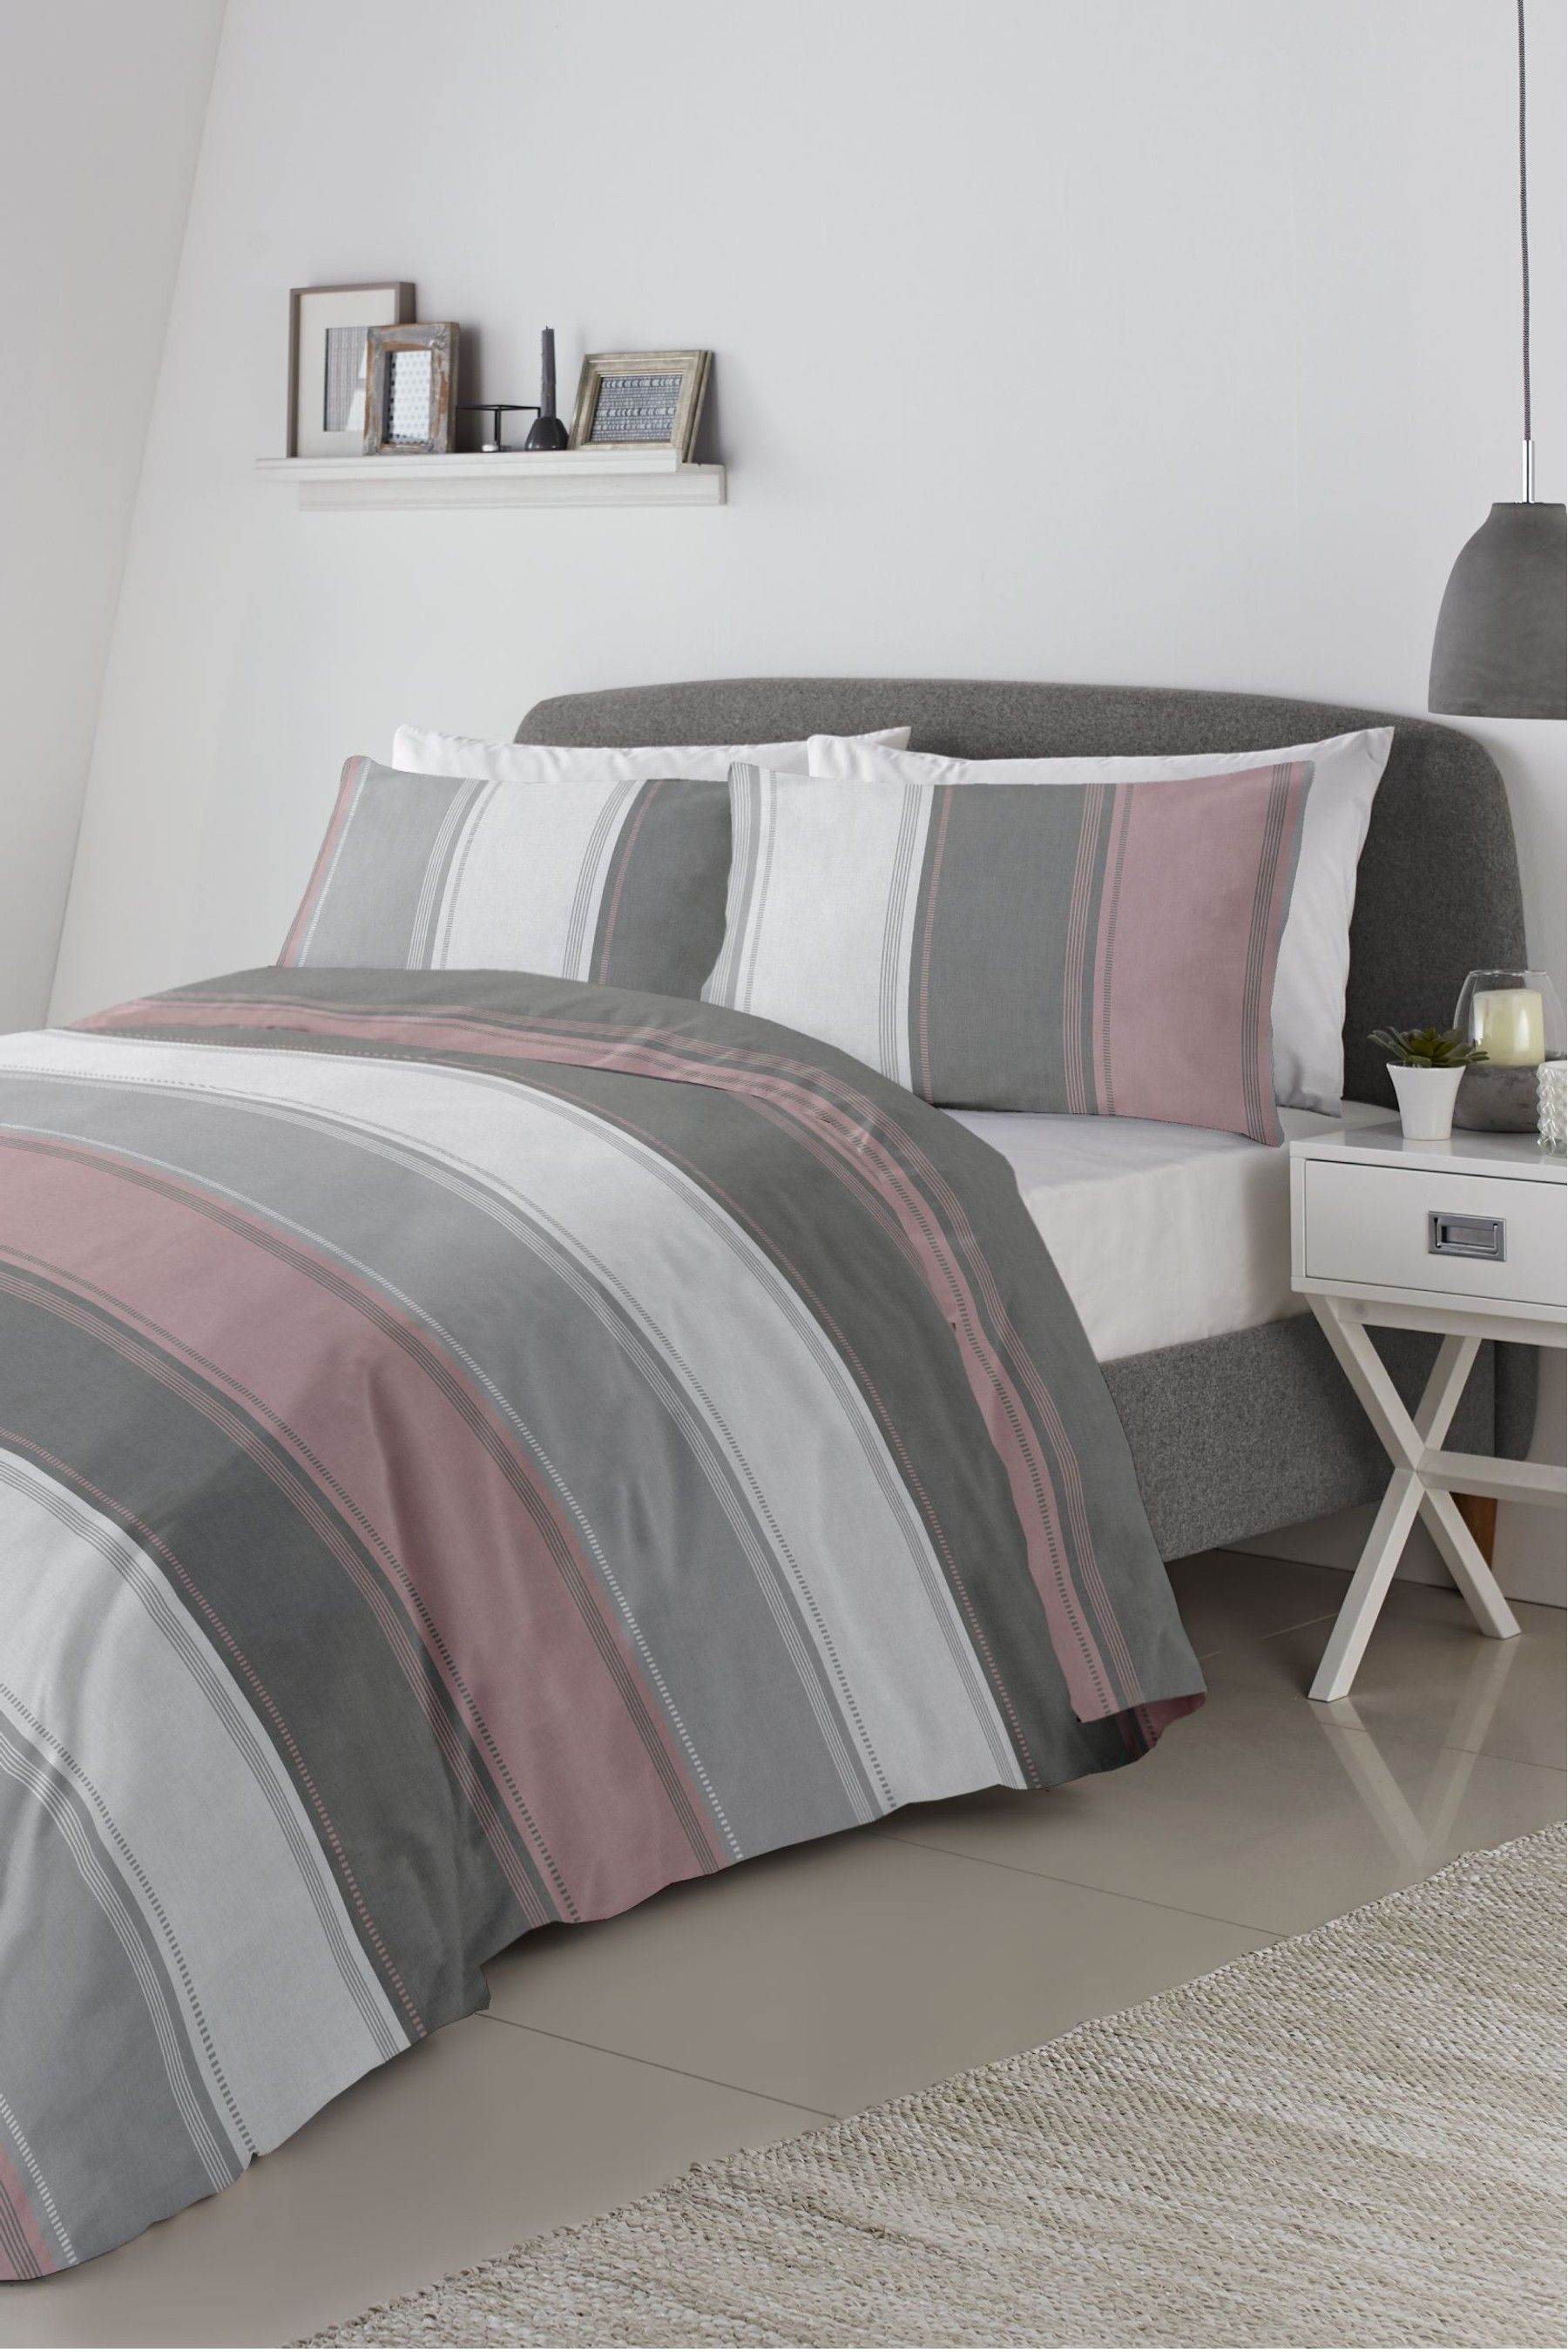 c550d9326da4 Fusion Betley Duvet Cover and Pillowcase Set - Grey in 2019 ...